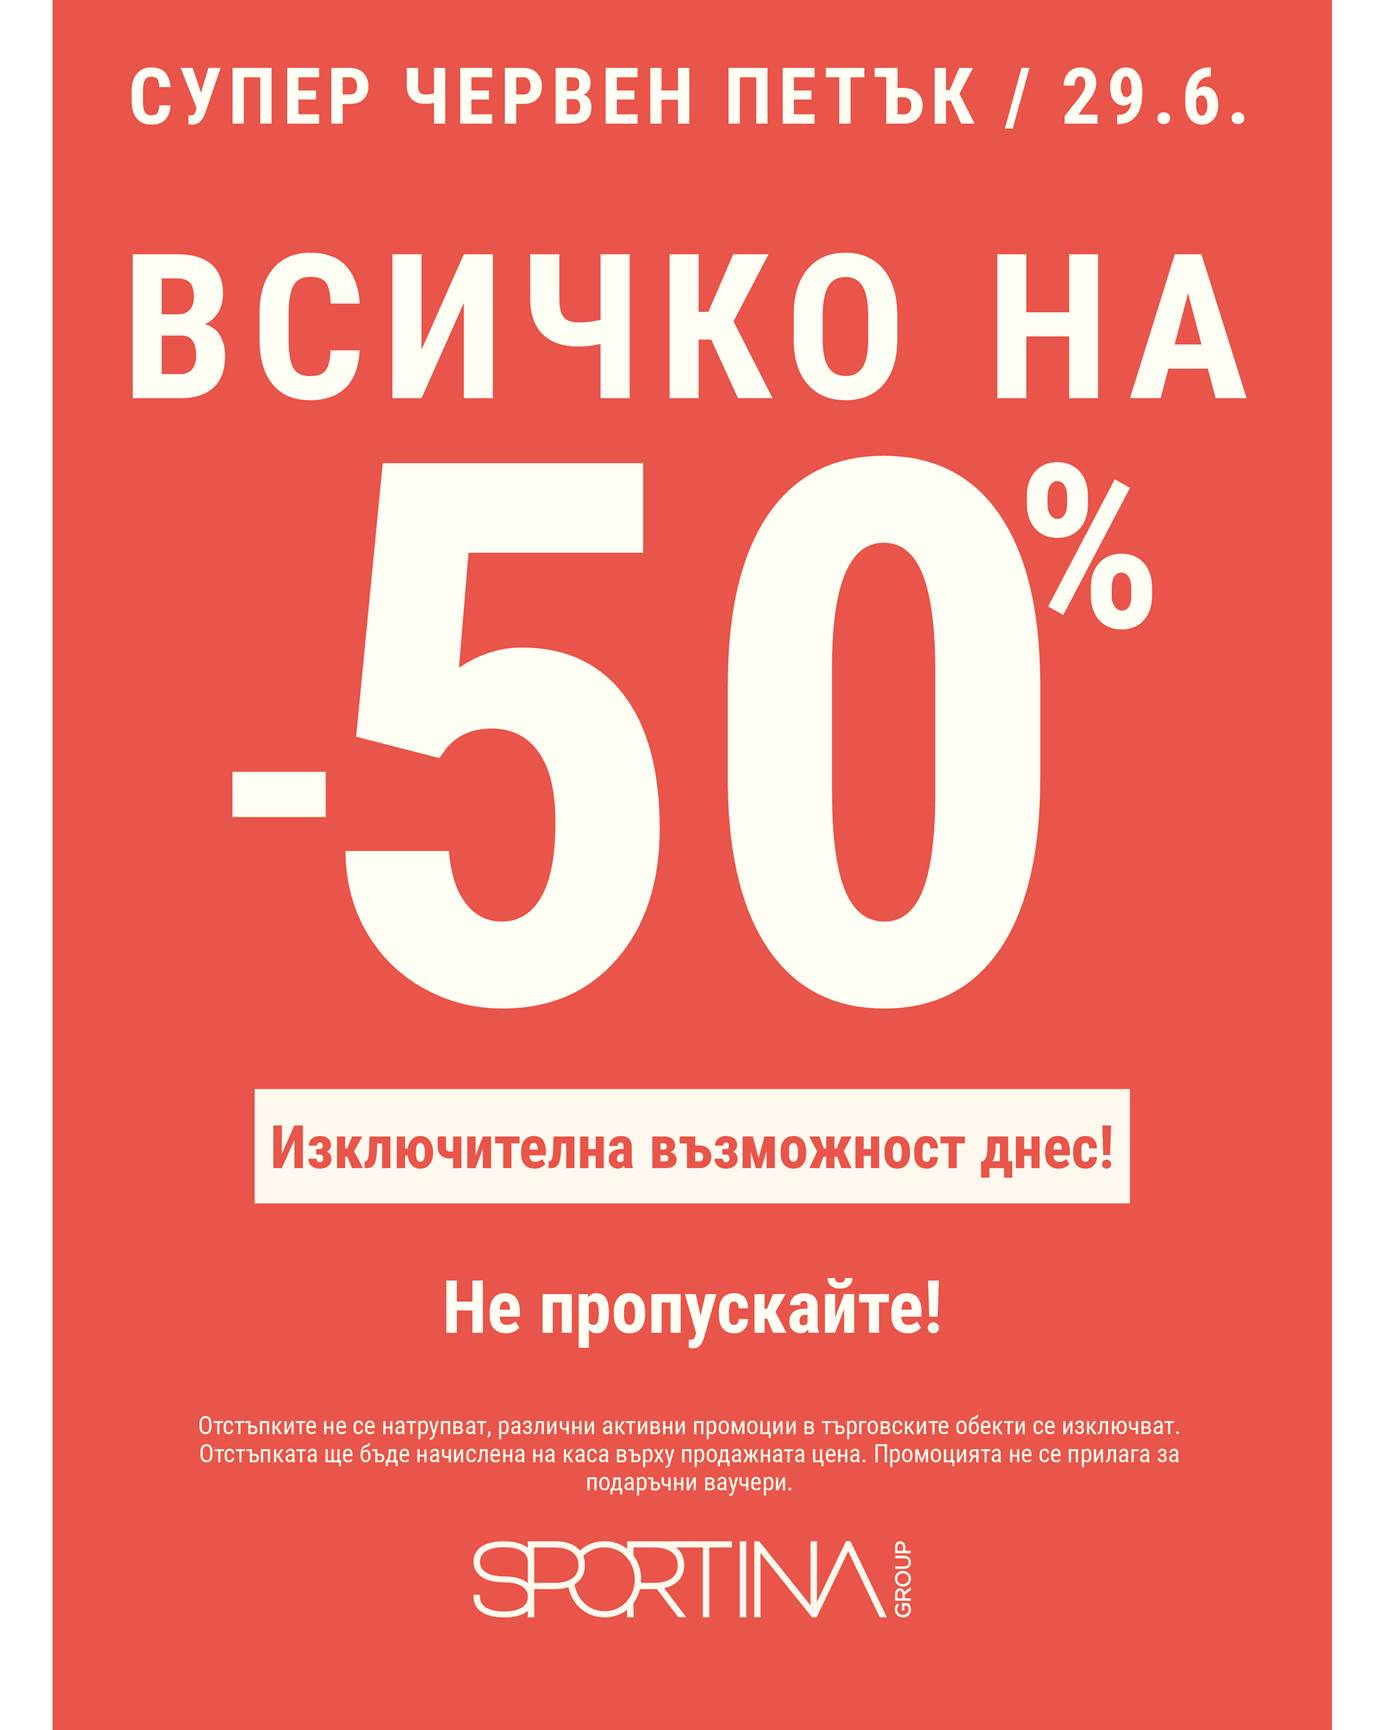 The Discounts at Sportina Have Started